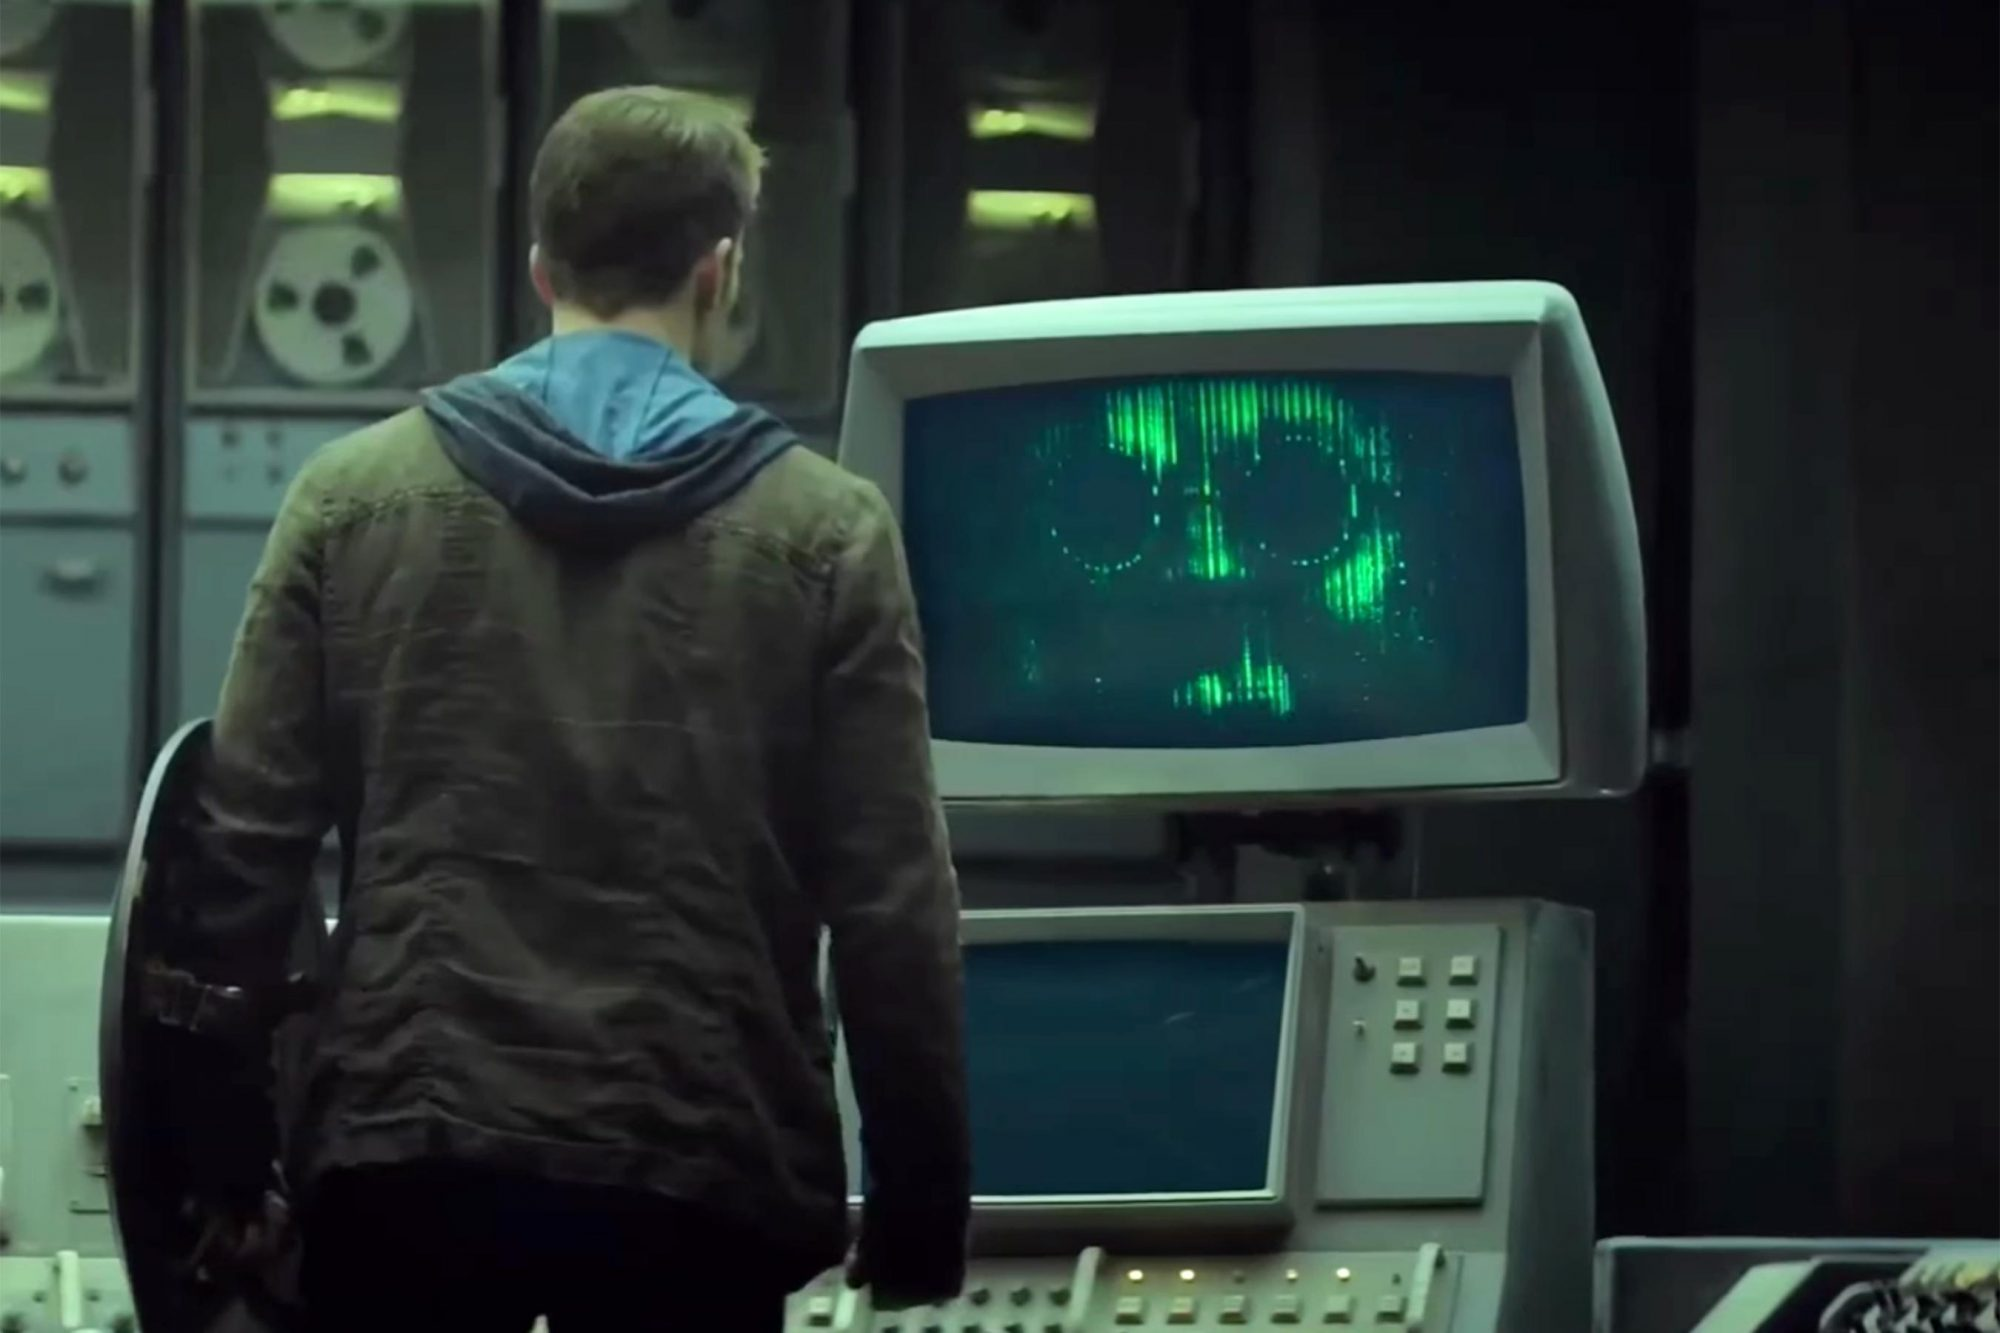 Side lined by MCU, Arnim Zola appeared as an old-fashioned computer in Winter Soldier.